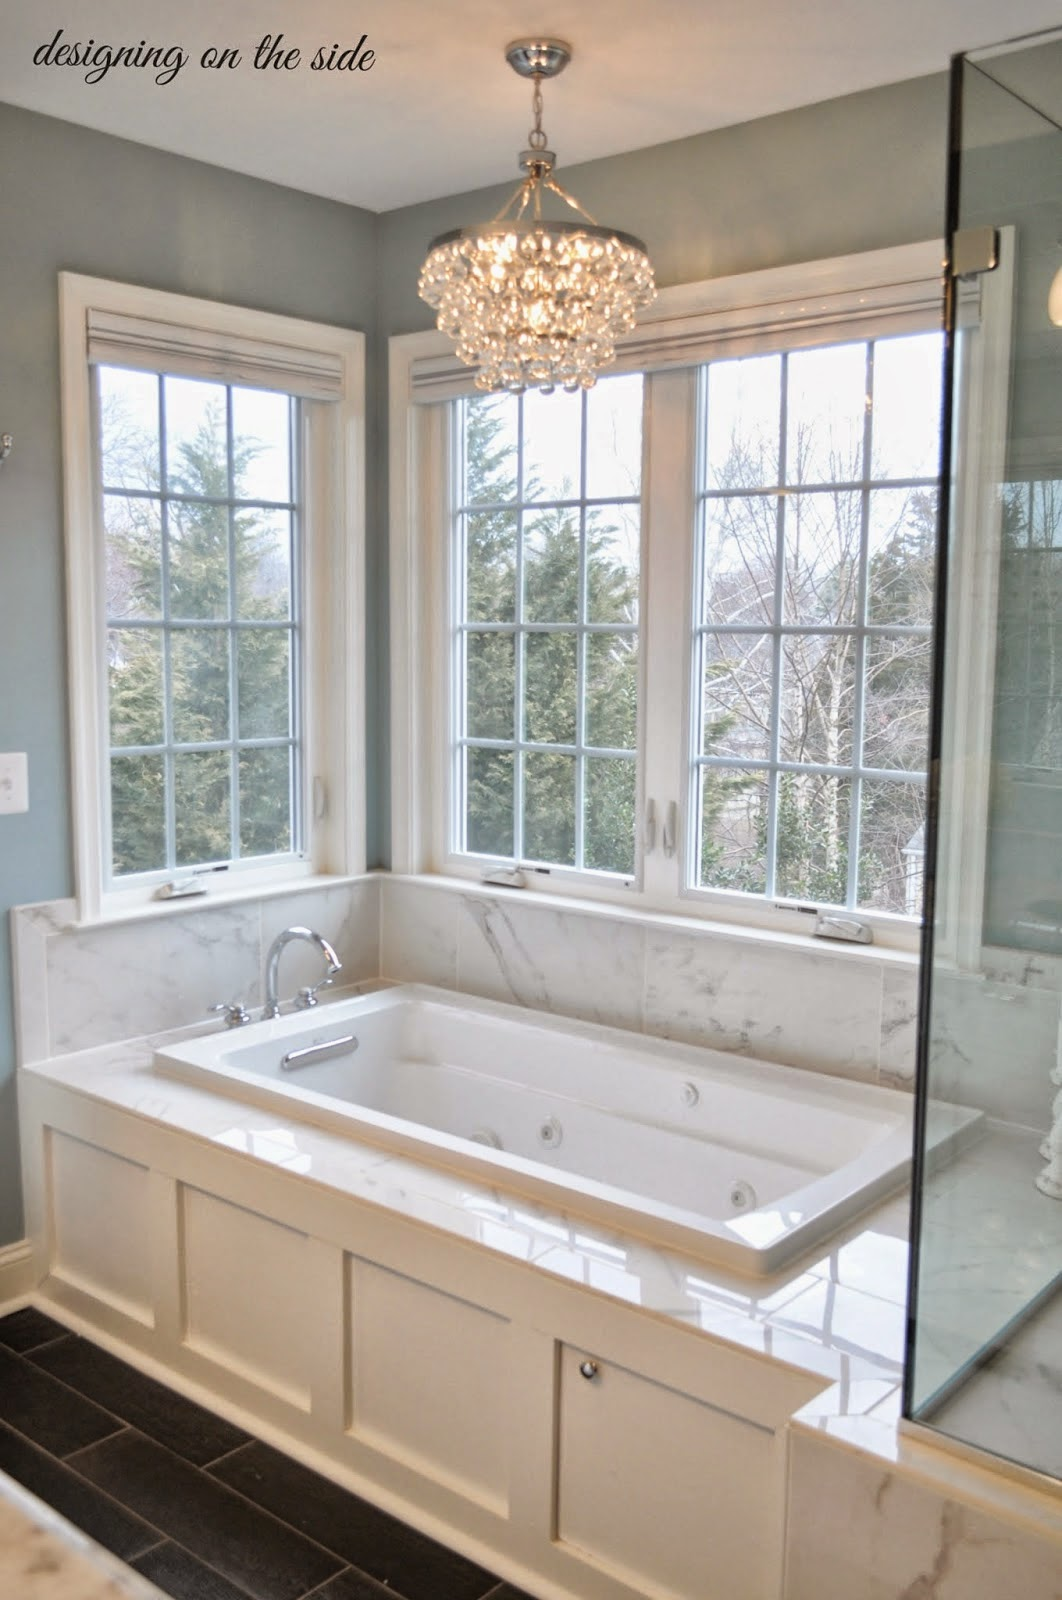 Master bathroom ideas entirely eventful day - Master bathroom ...